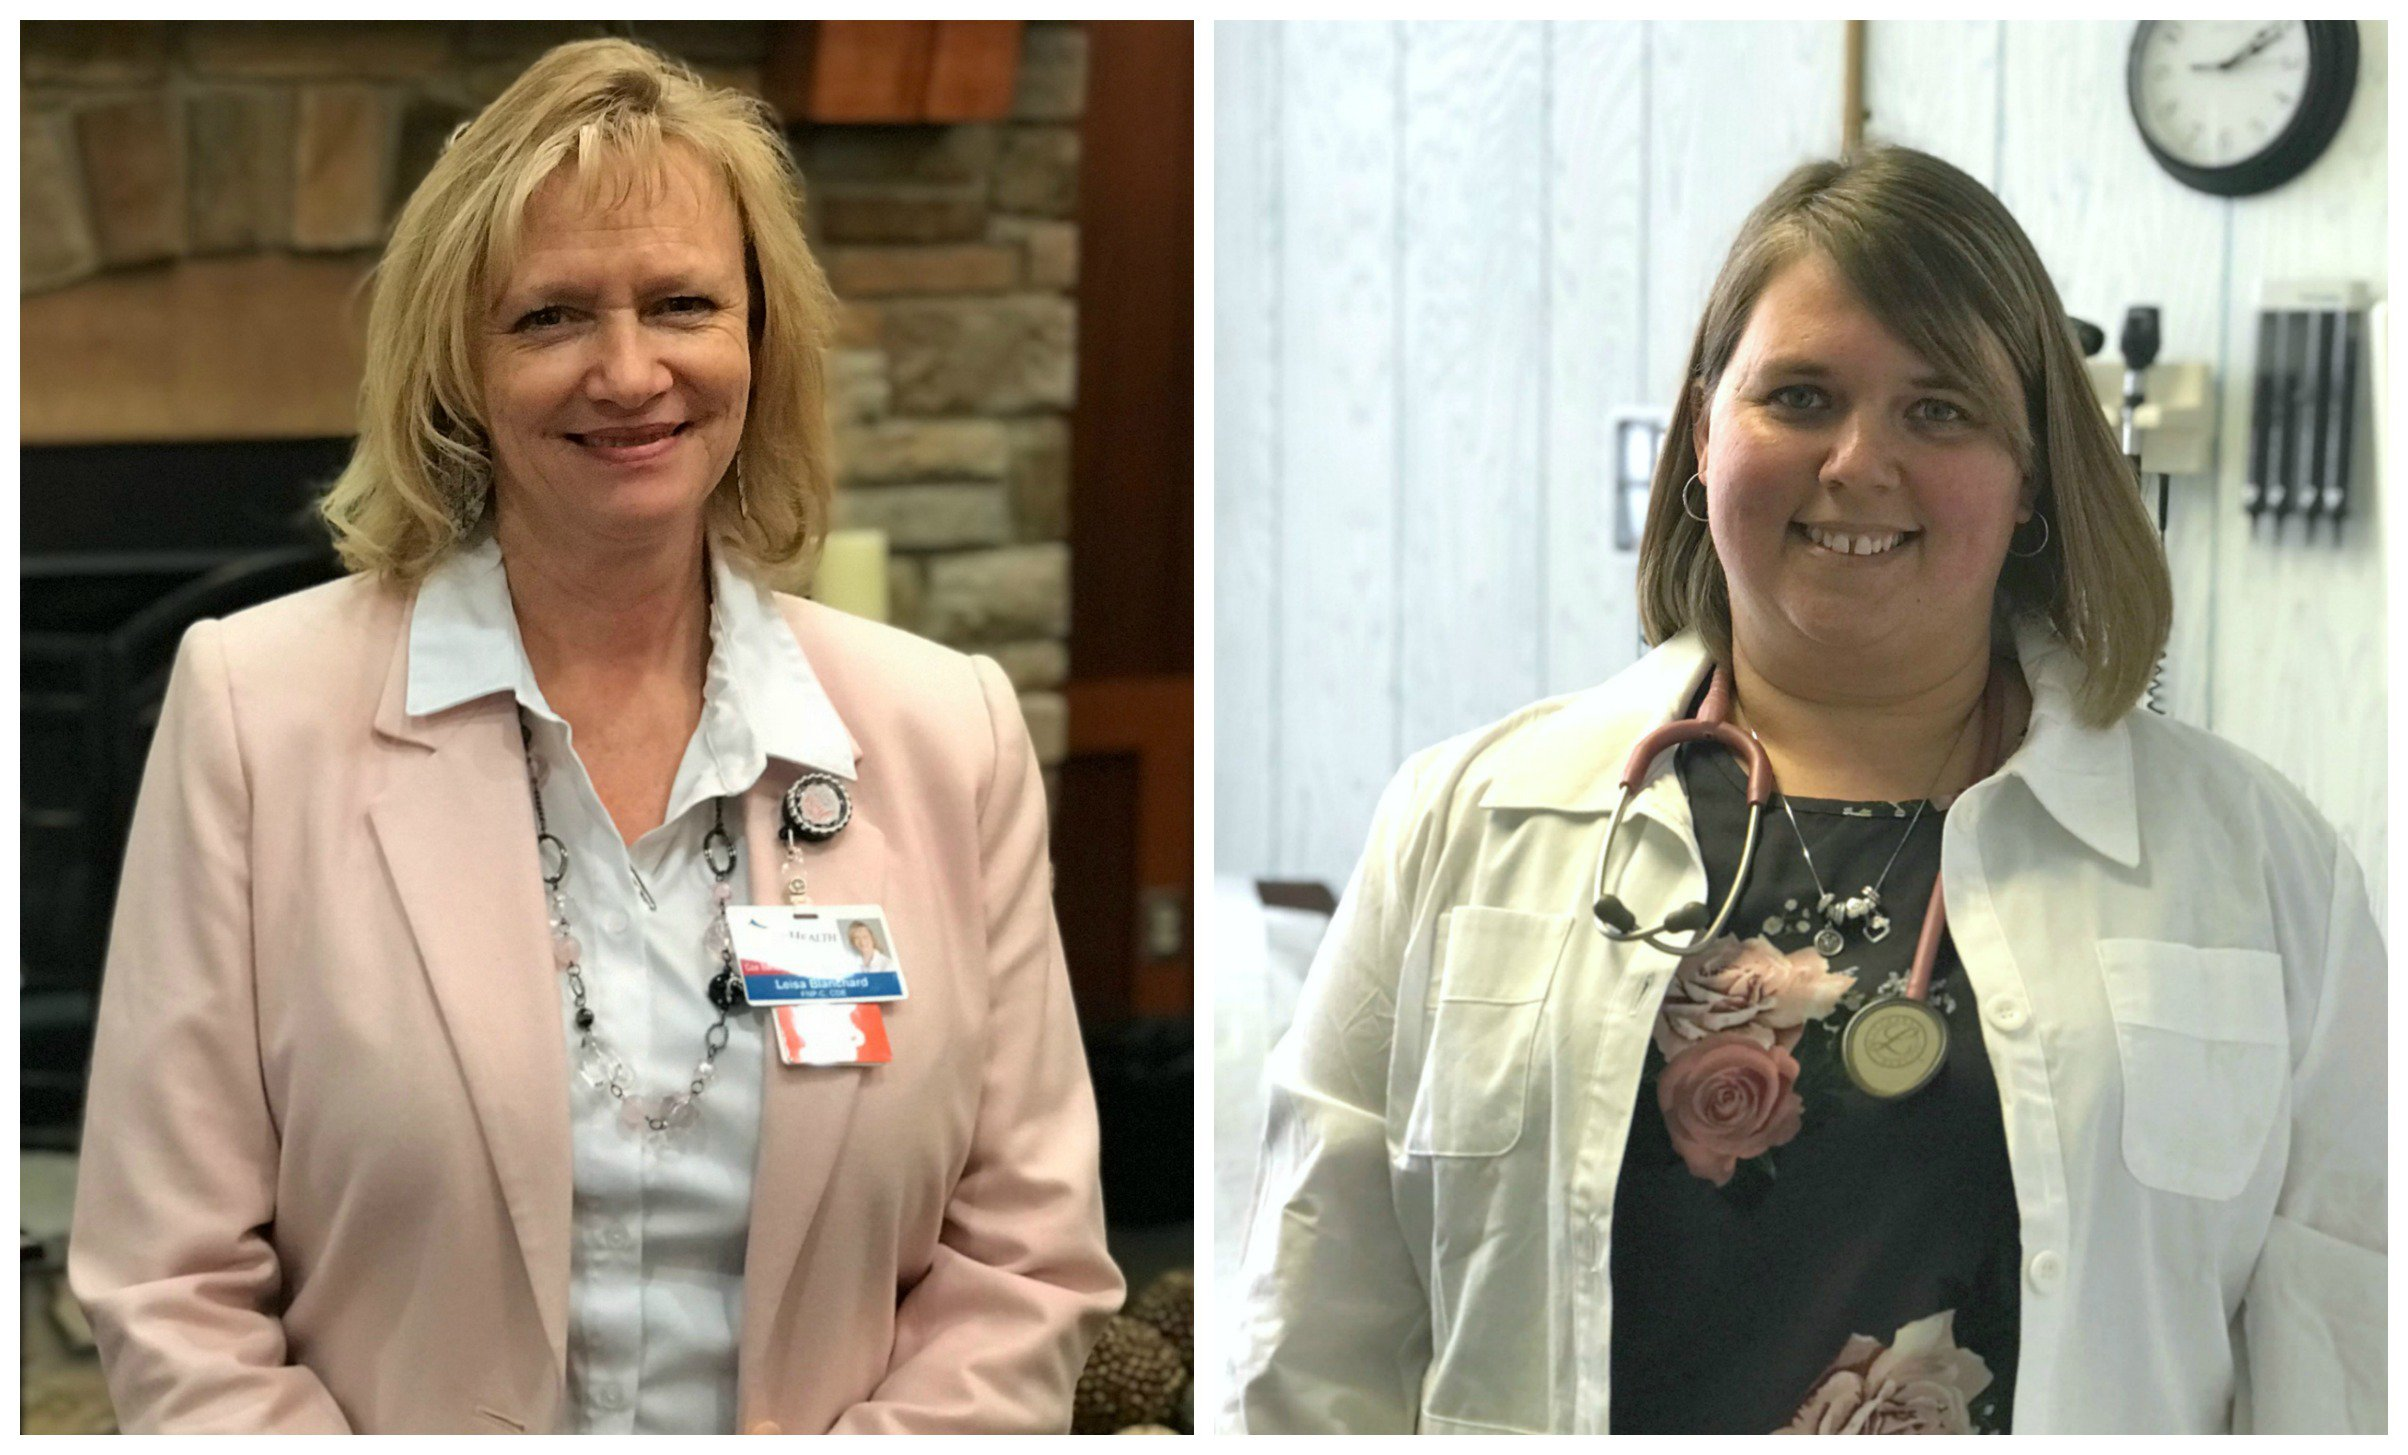 Two new providers are shown who recently began serving in Barton County.